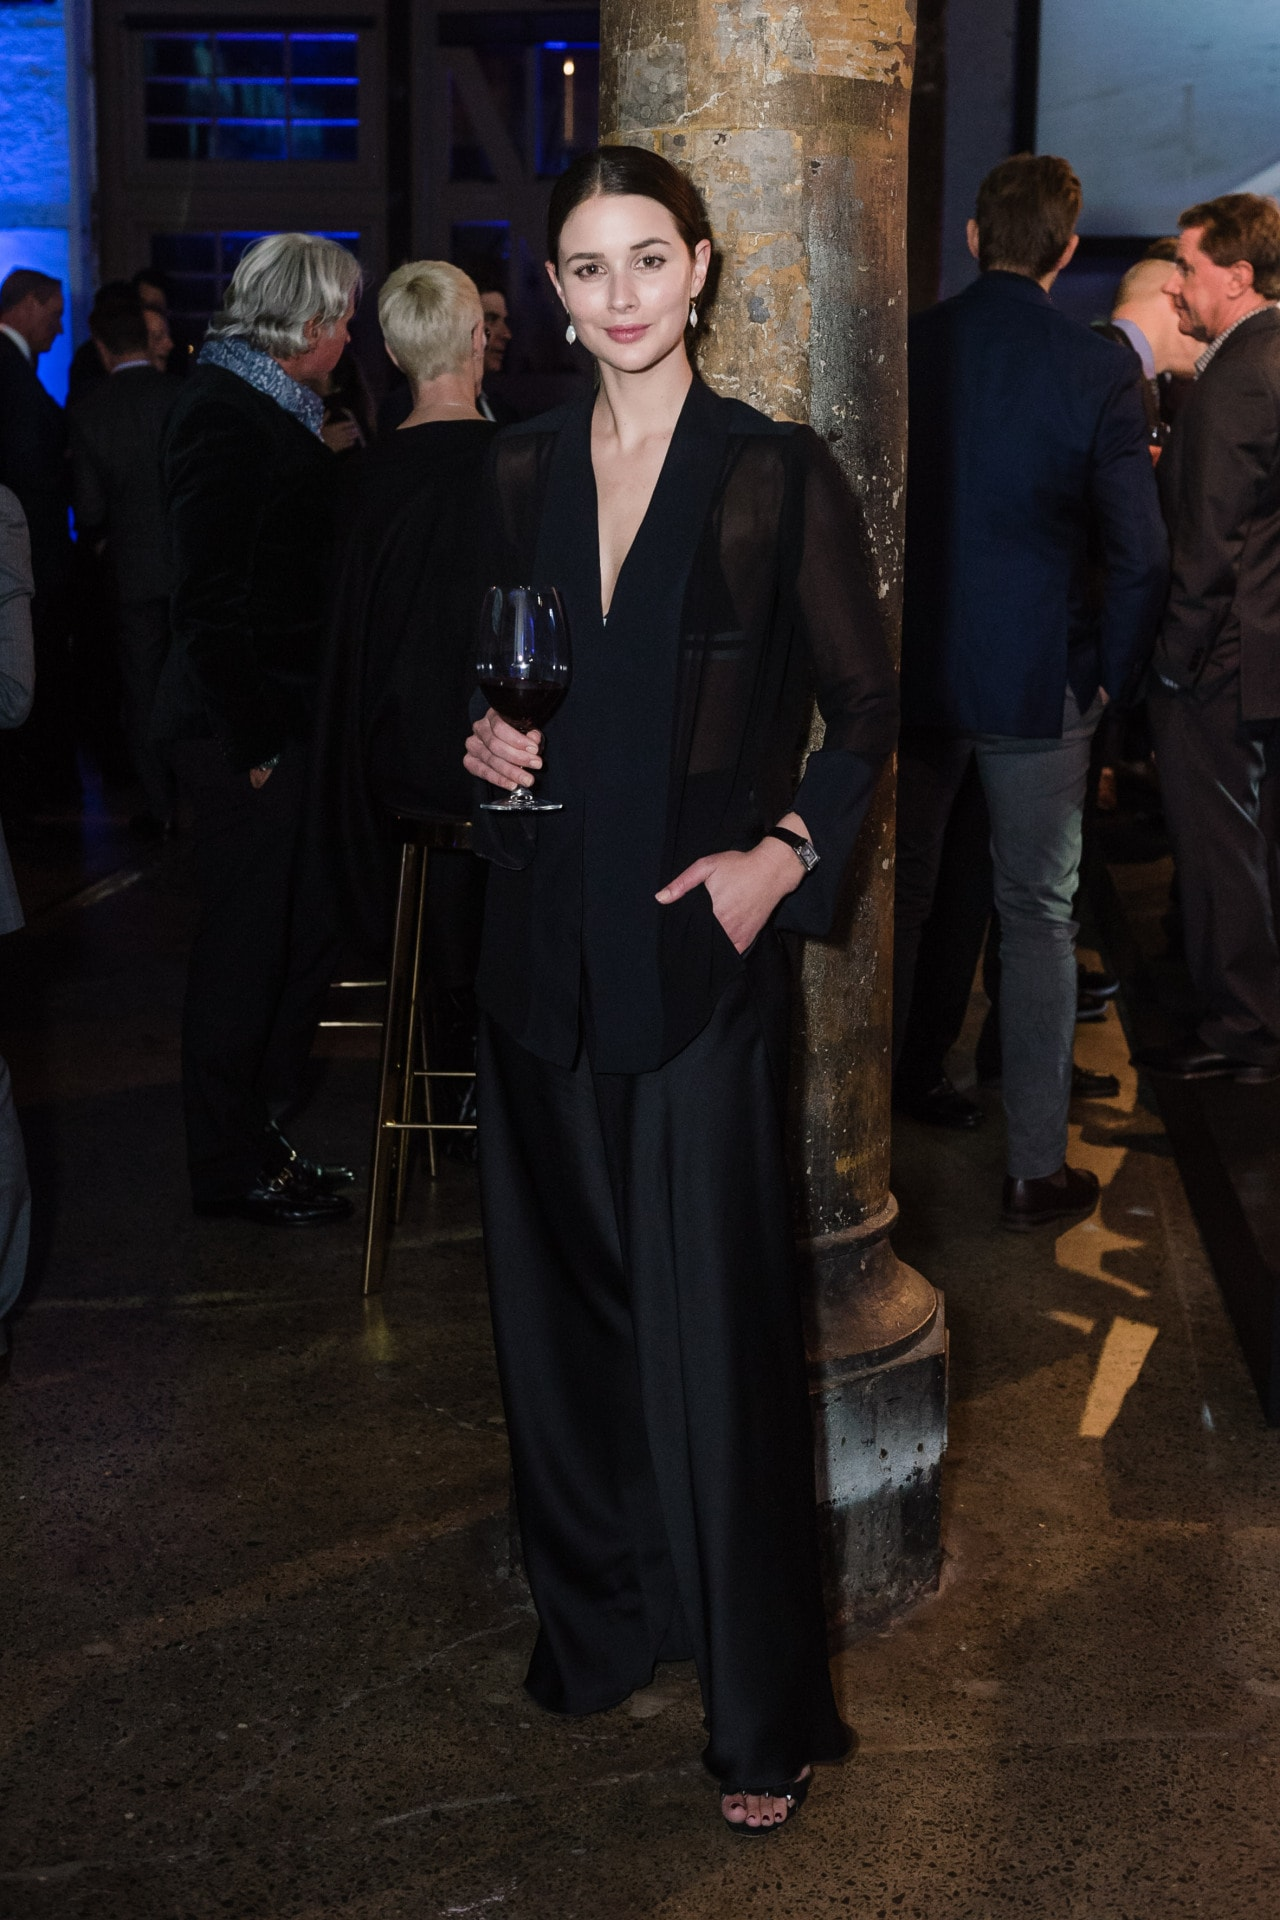 Sarah Crompton at the Jaeger-LeCoultre launch of the Polaris collection. Image credit: Supplied